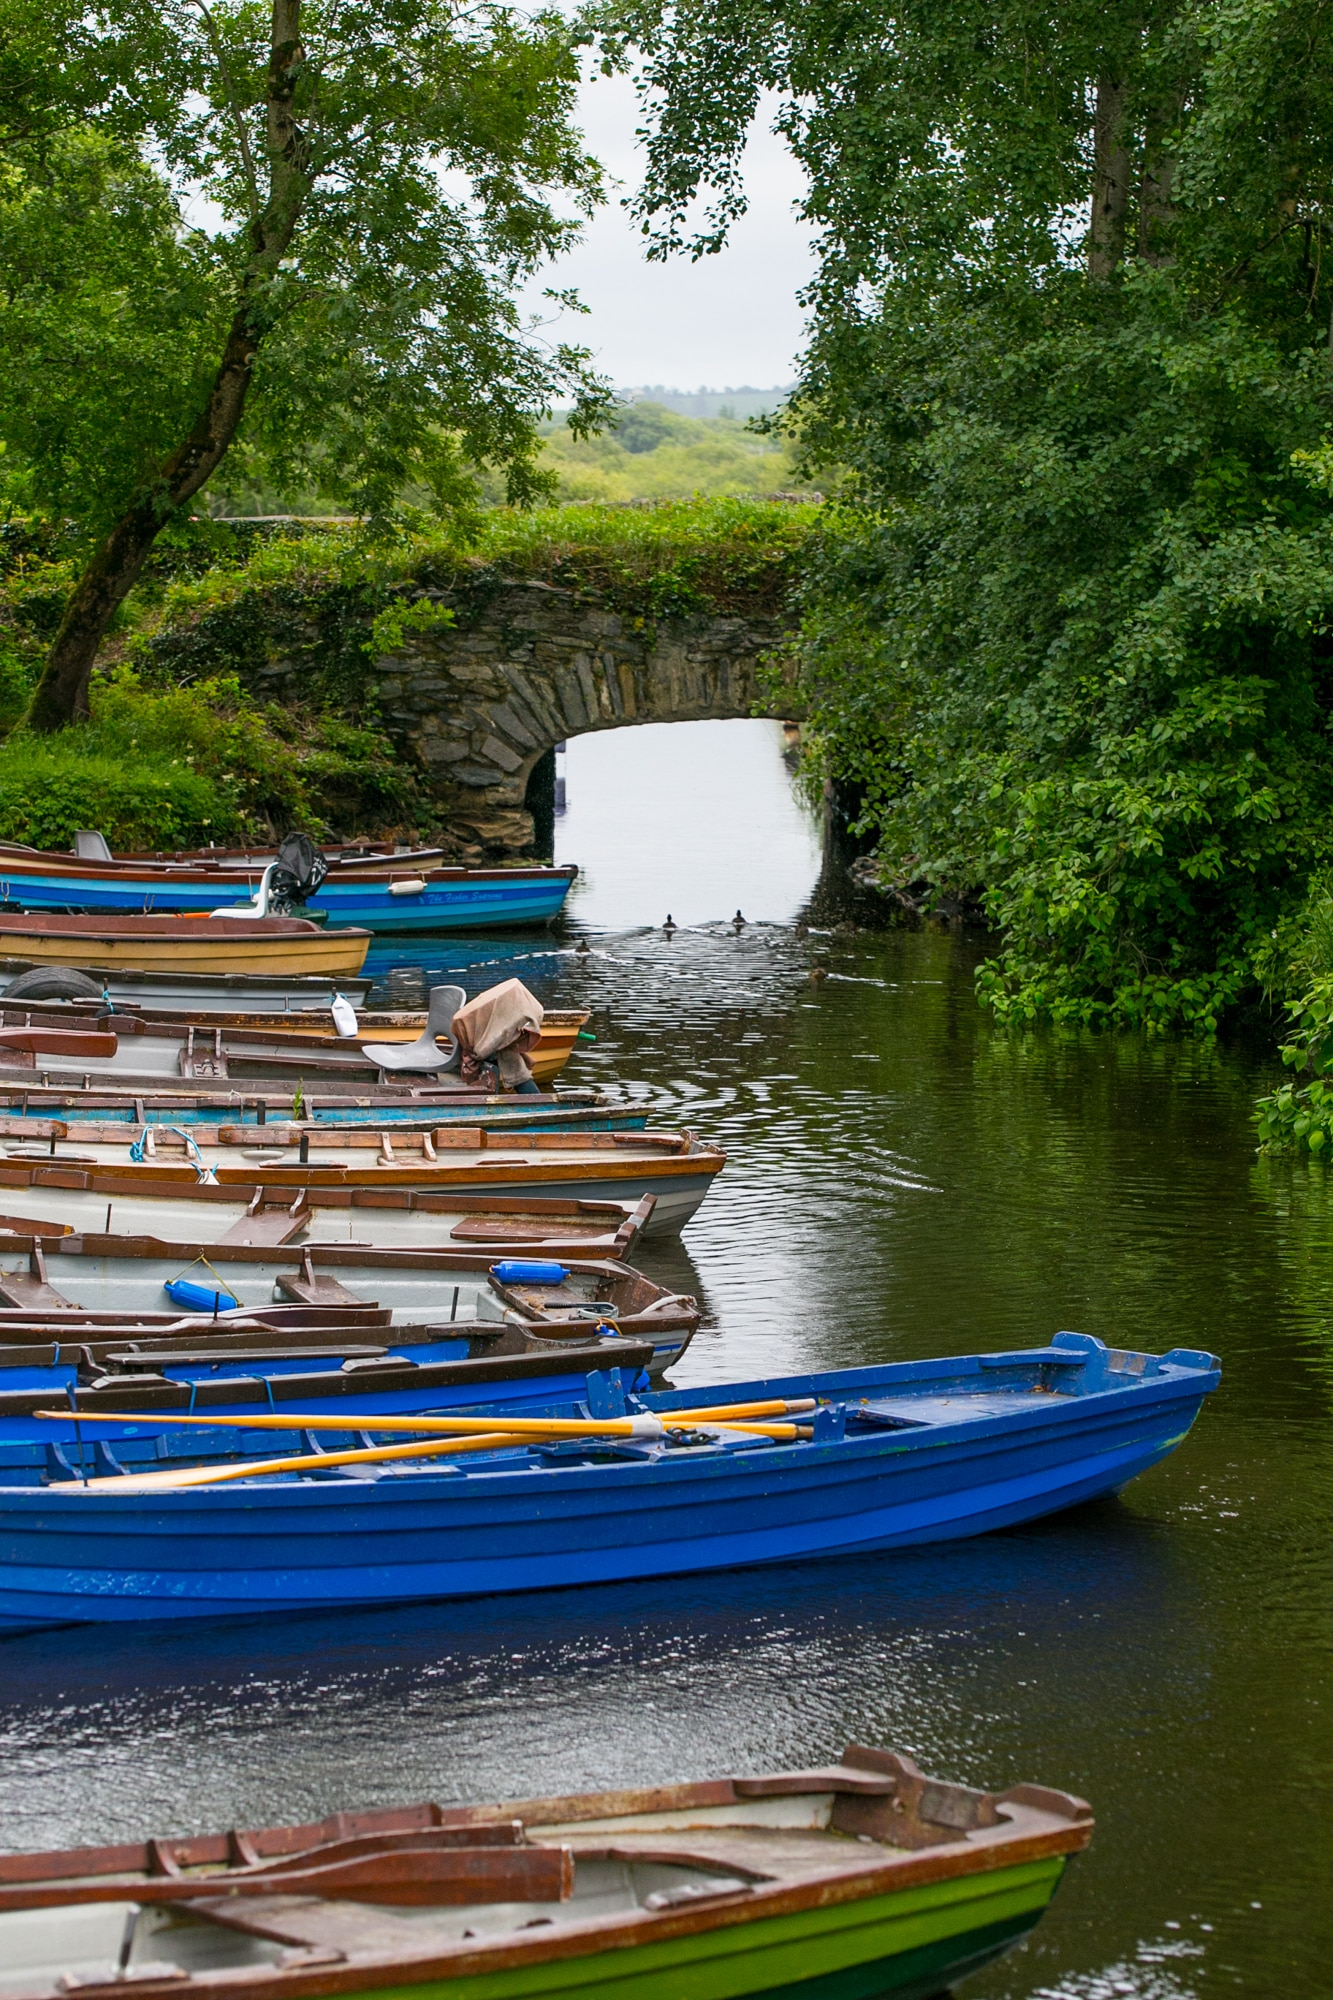 Boats by bridge, Killarney National Park Ireland